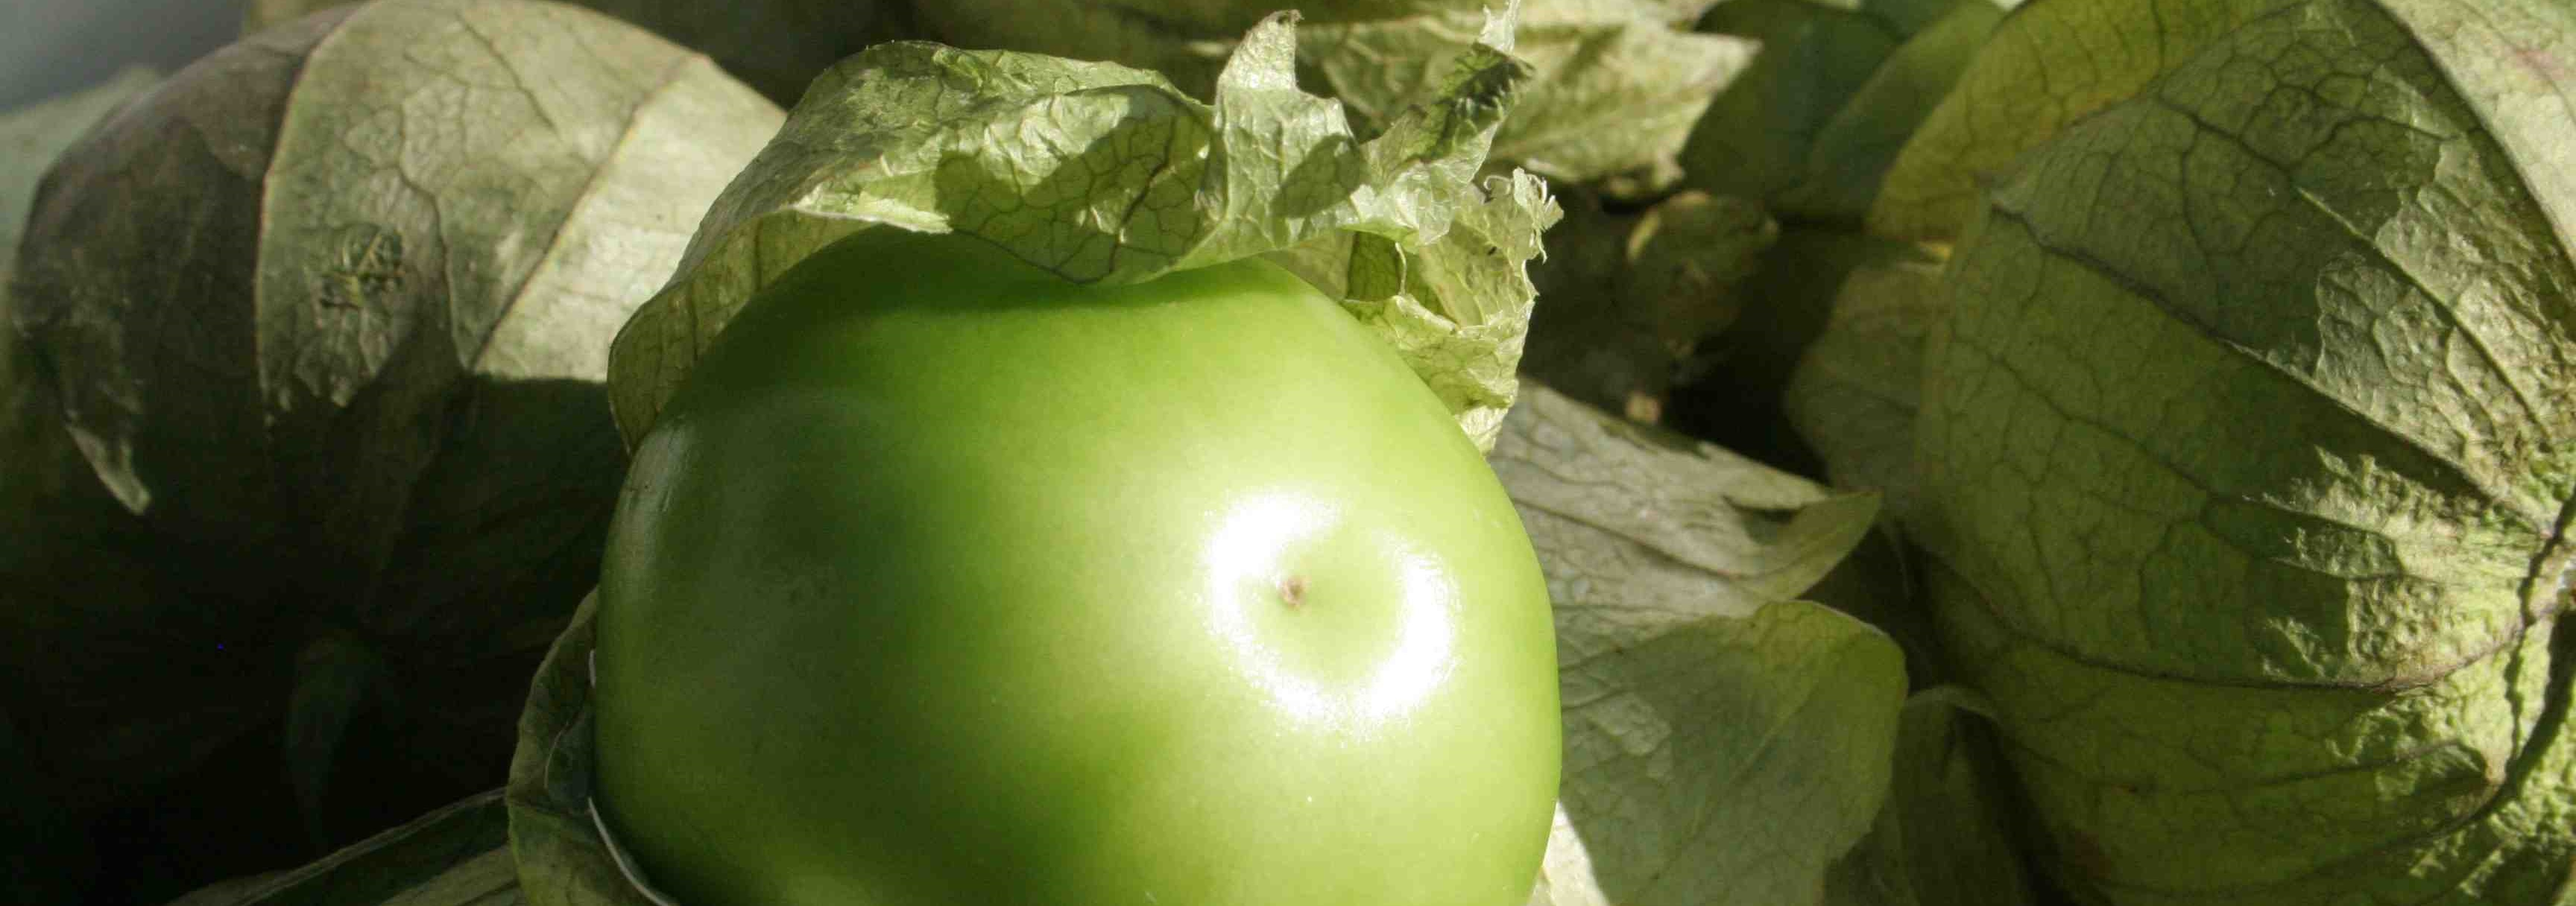 tomatillo-category.jpg